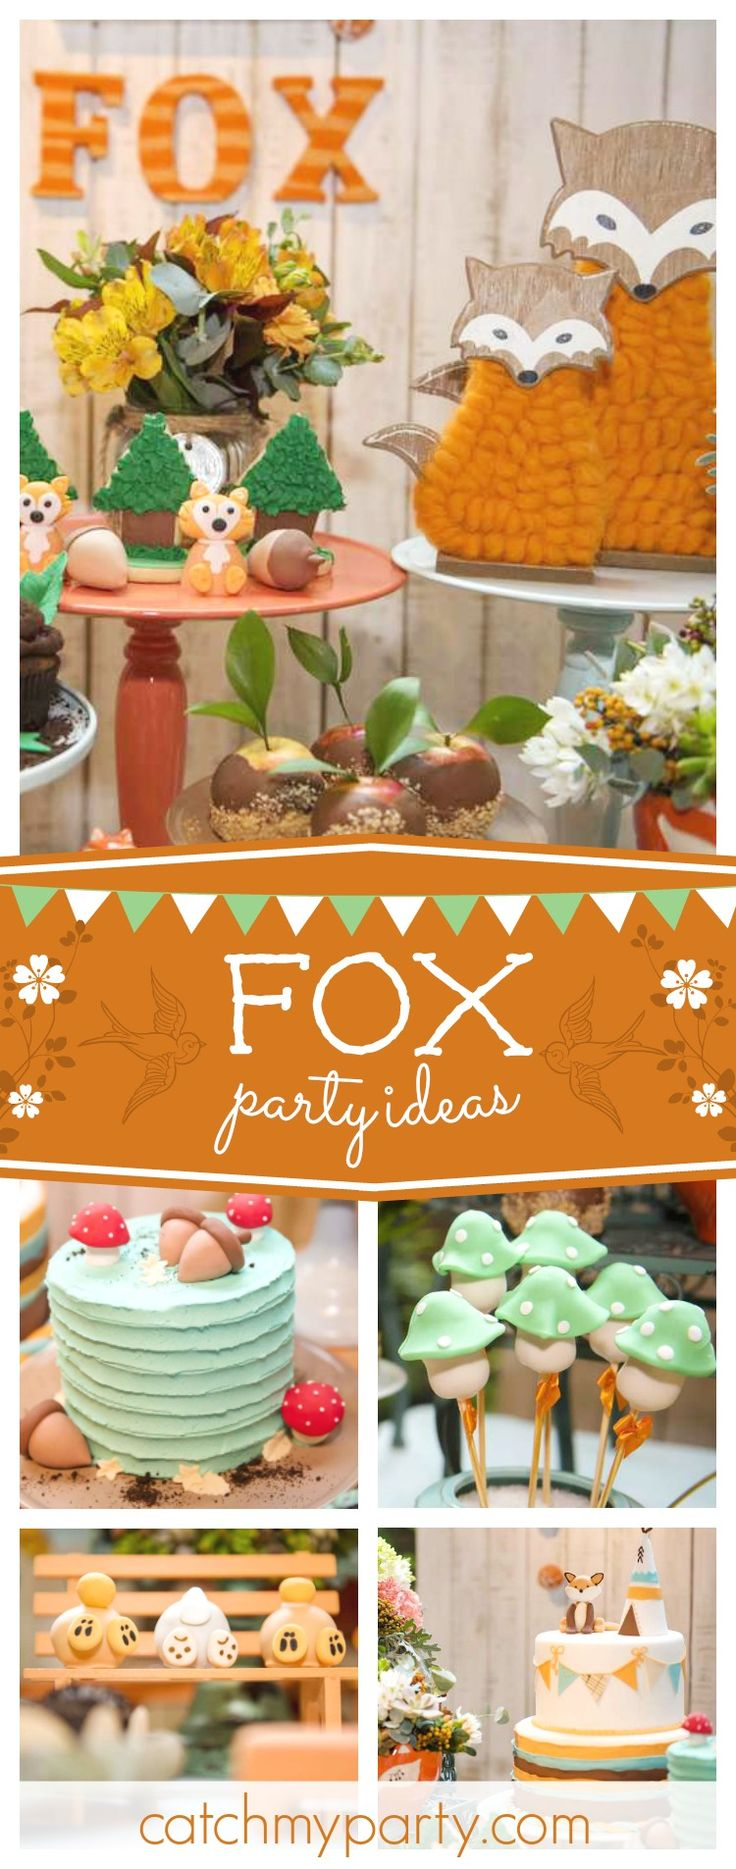 Check out this adorable little fox birthday party! The cake pops are too cute!! See more party ideas and share yours at CatchMyparty.com #partyideas #fox #woodland animals